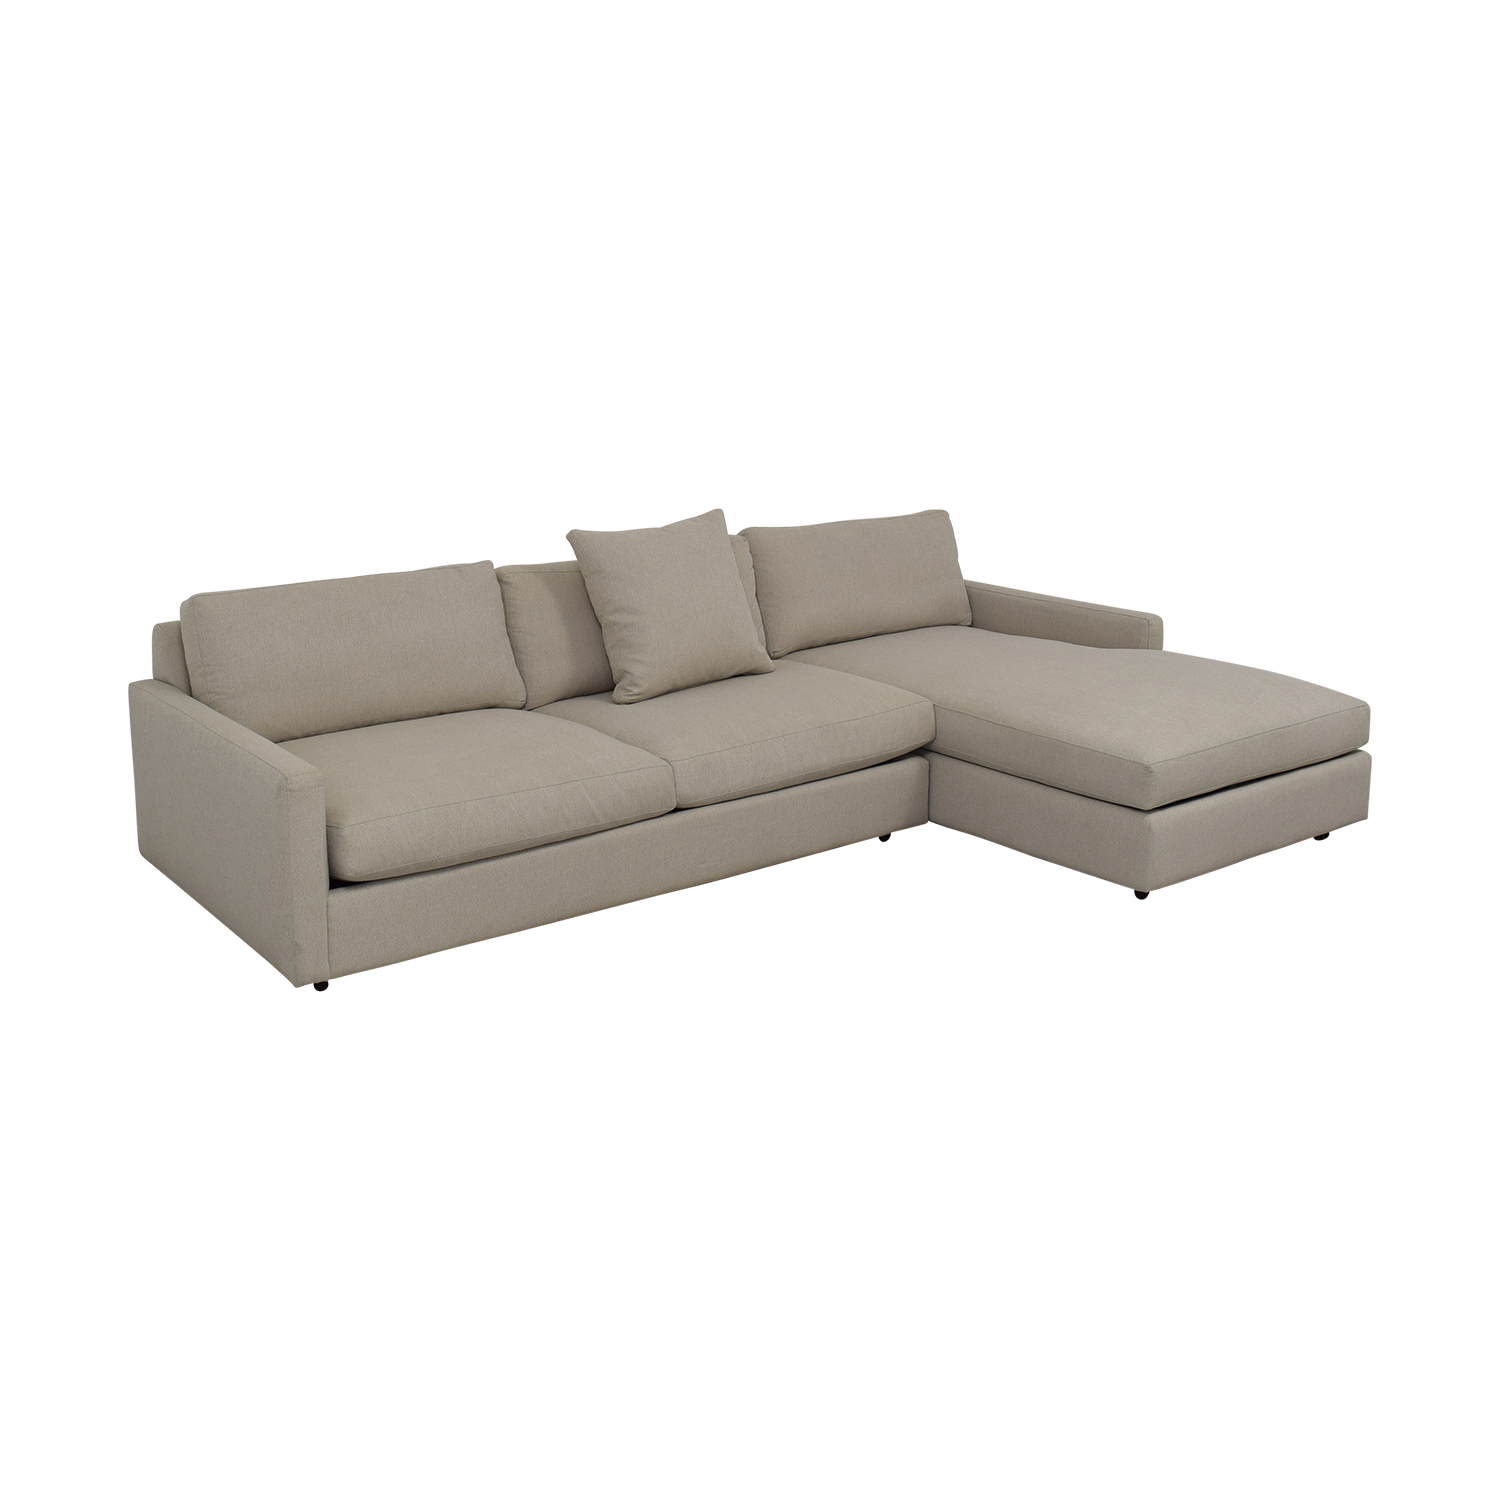 shop Room & Board Room & Board Linger Sofa with Chaise online